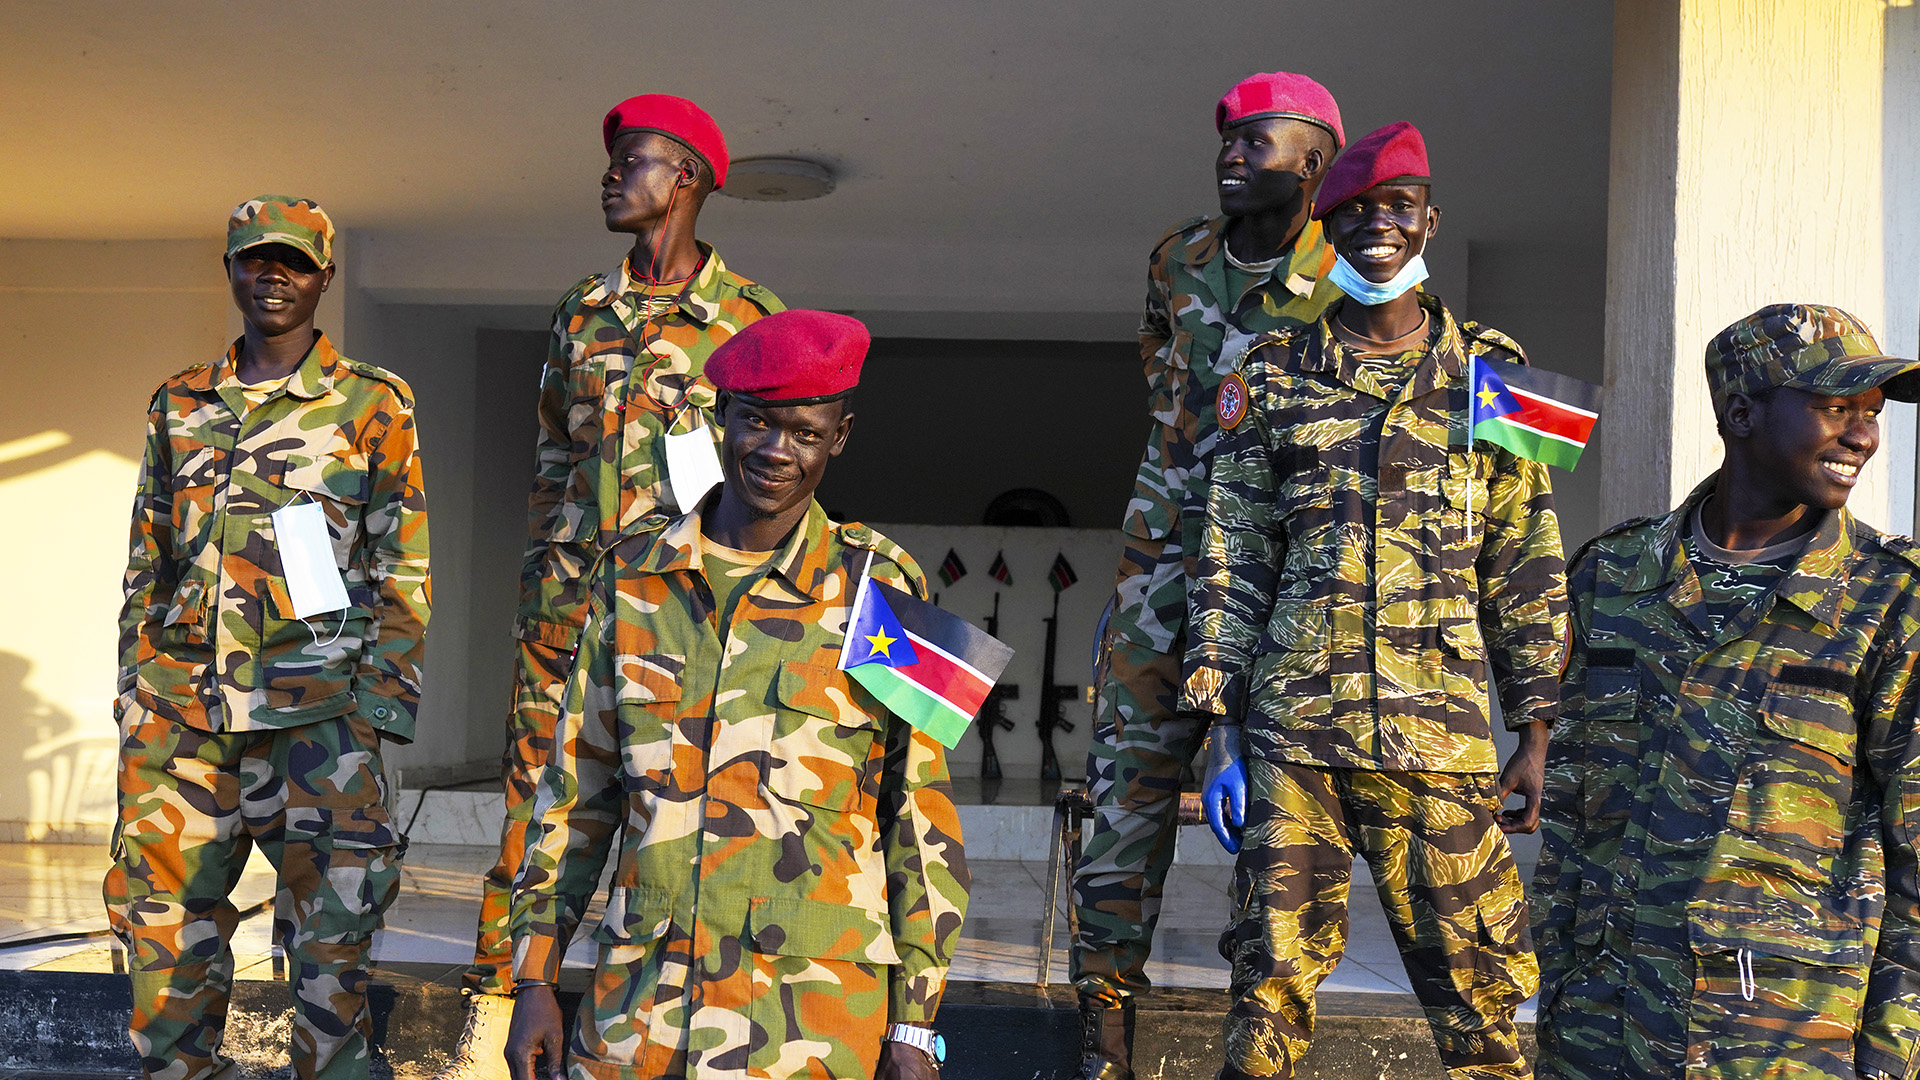 South Sudan First Vice President Rejects Deal On Command Of Military Recruits